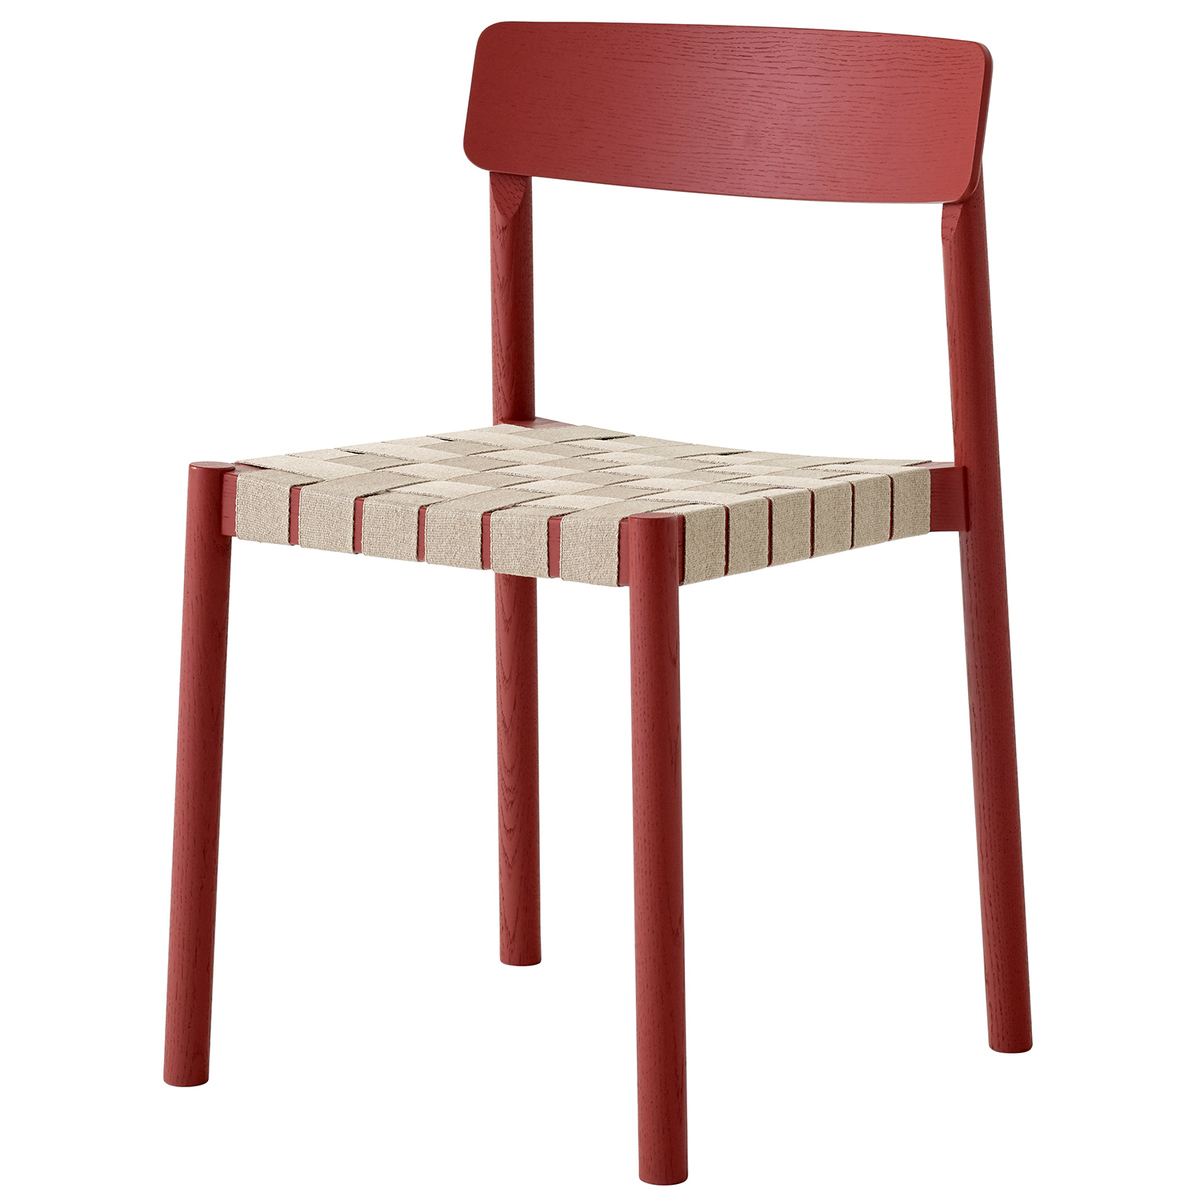 &Tradition Betty TK1 chair, maroon from &Tradition